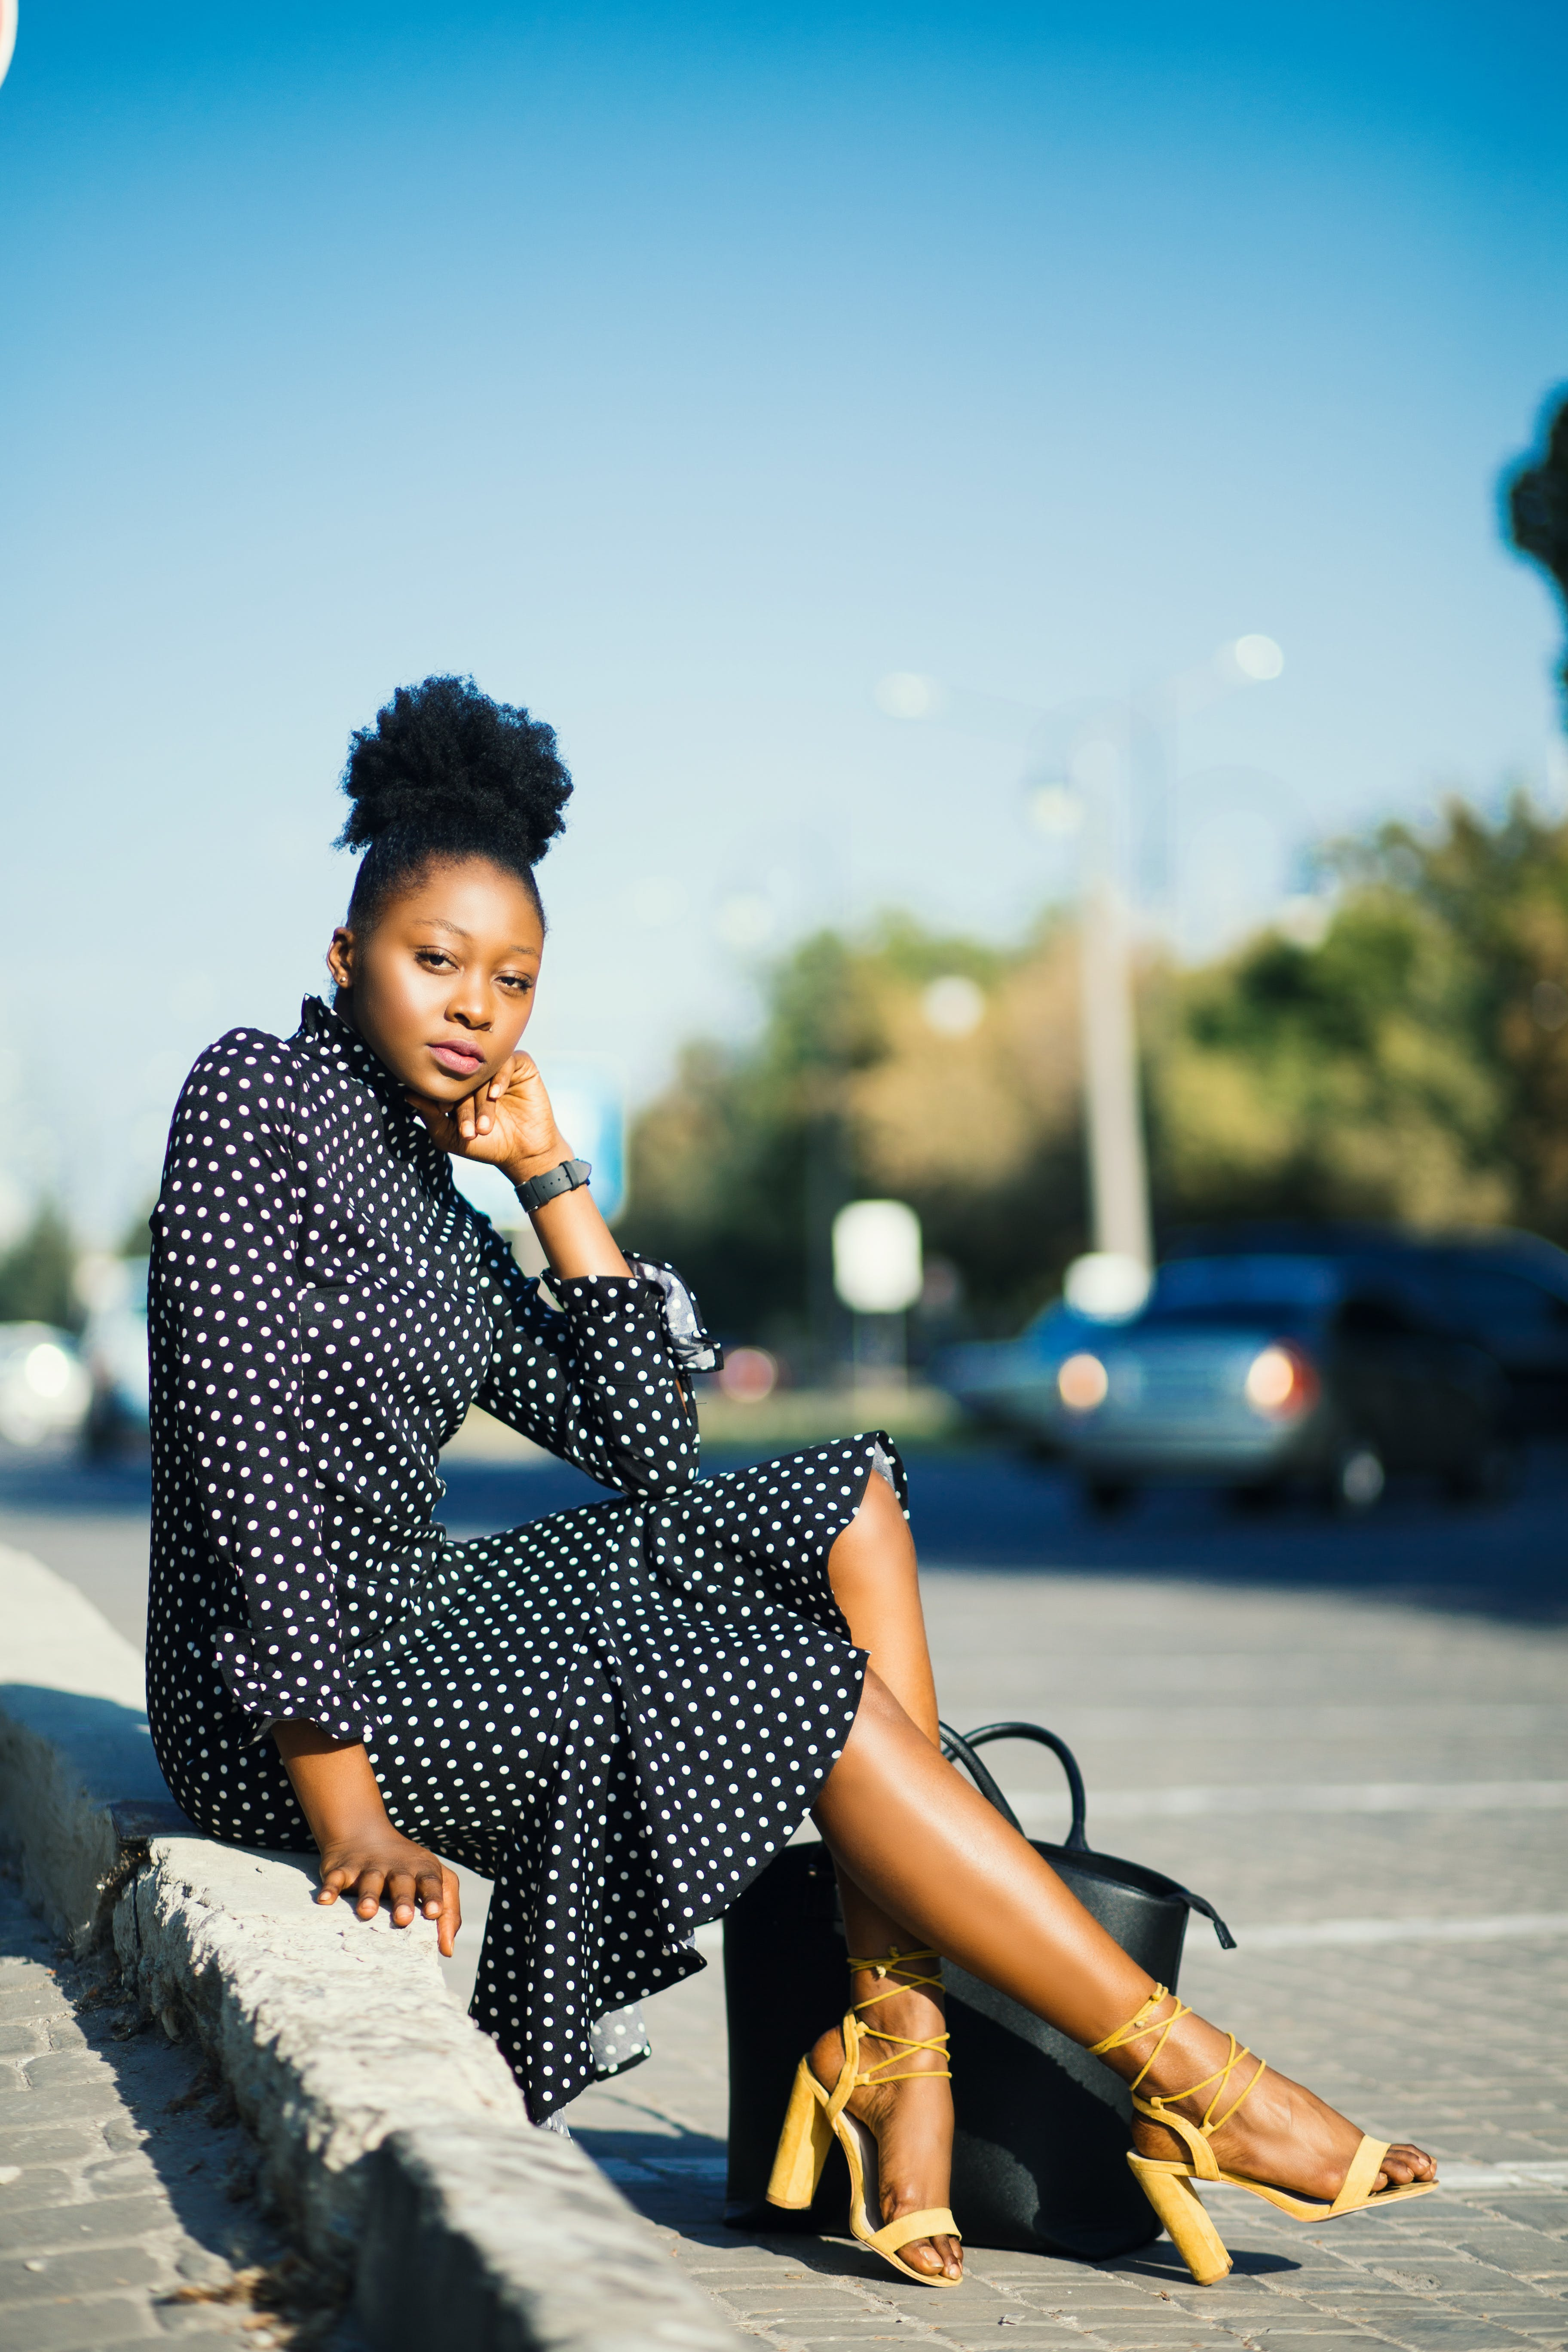 Woman in Black and White Polka-dot Dress Sitting Beside Pavement